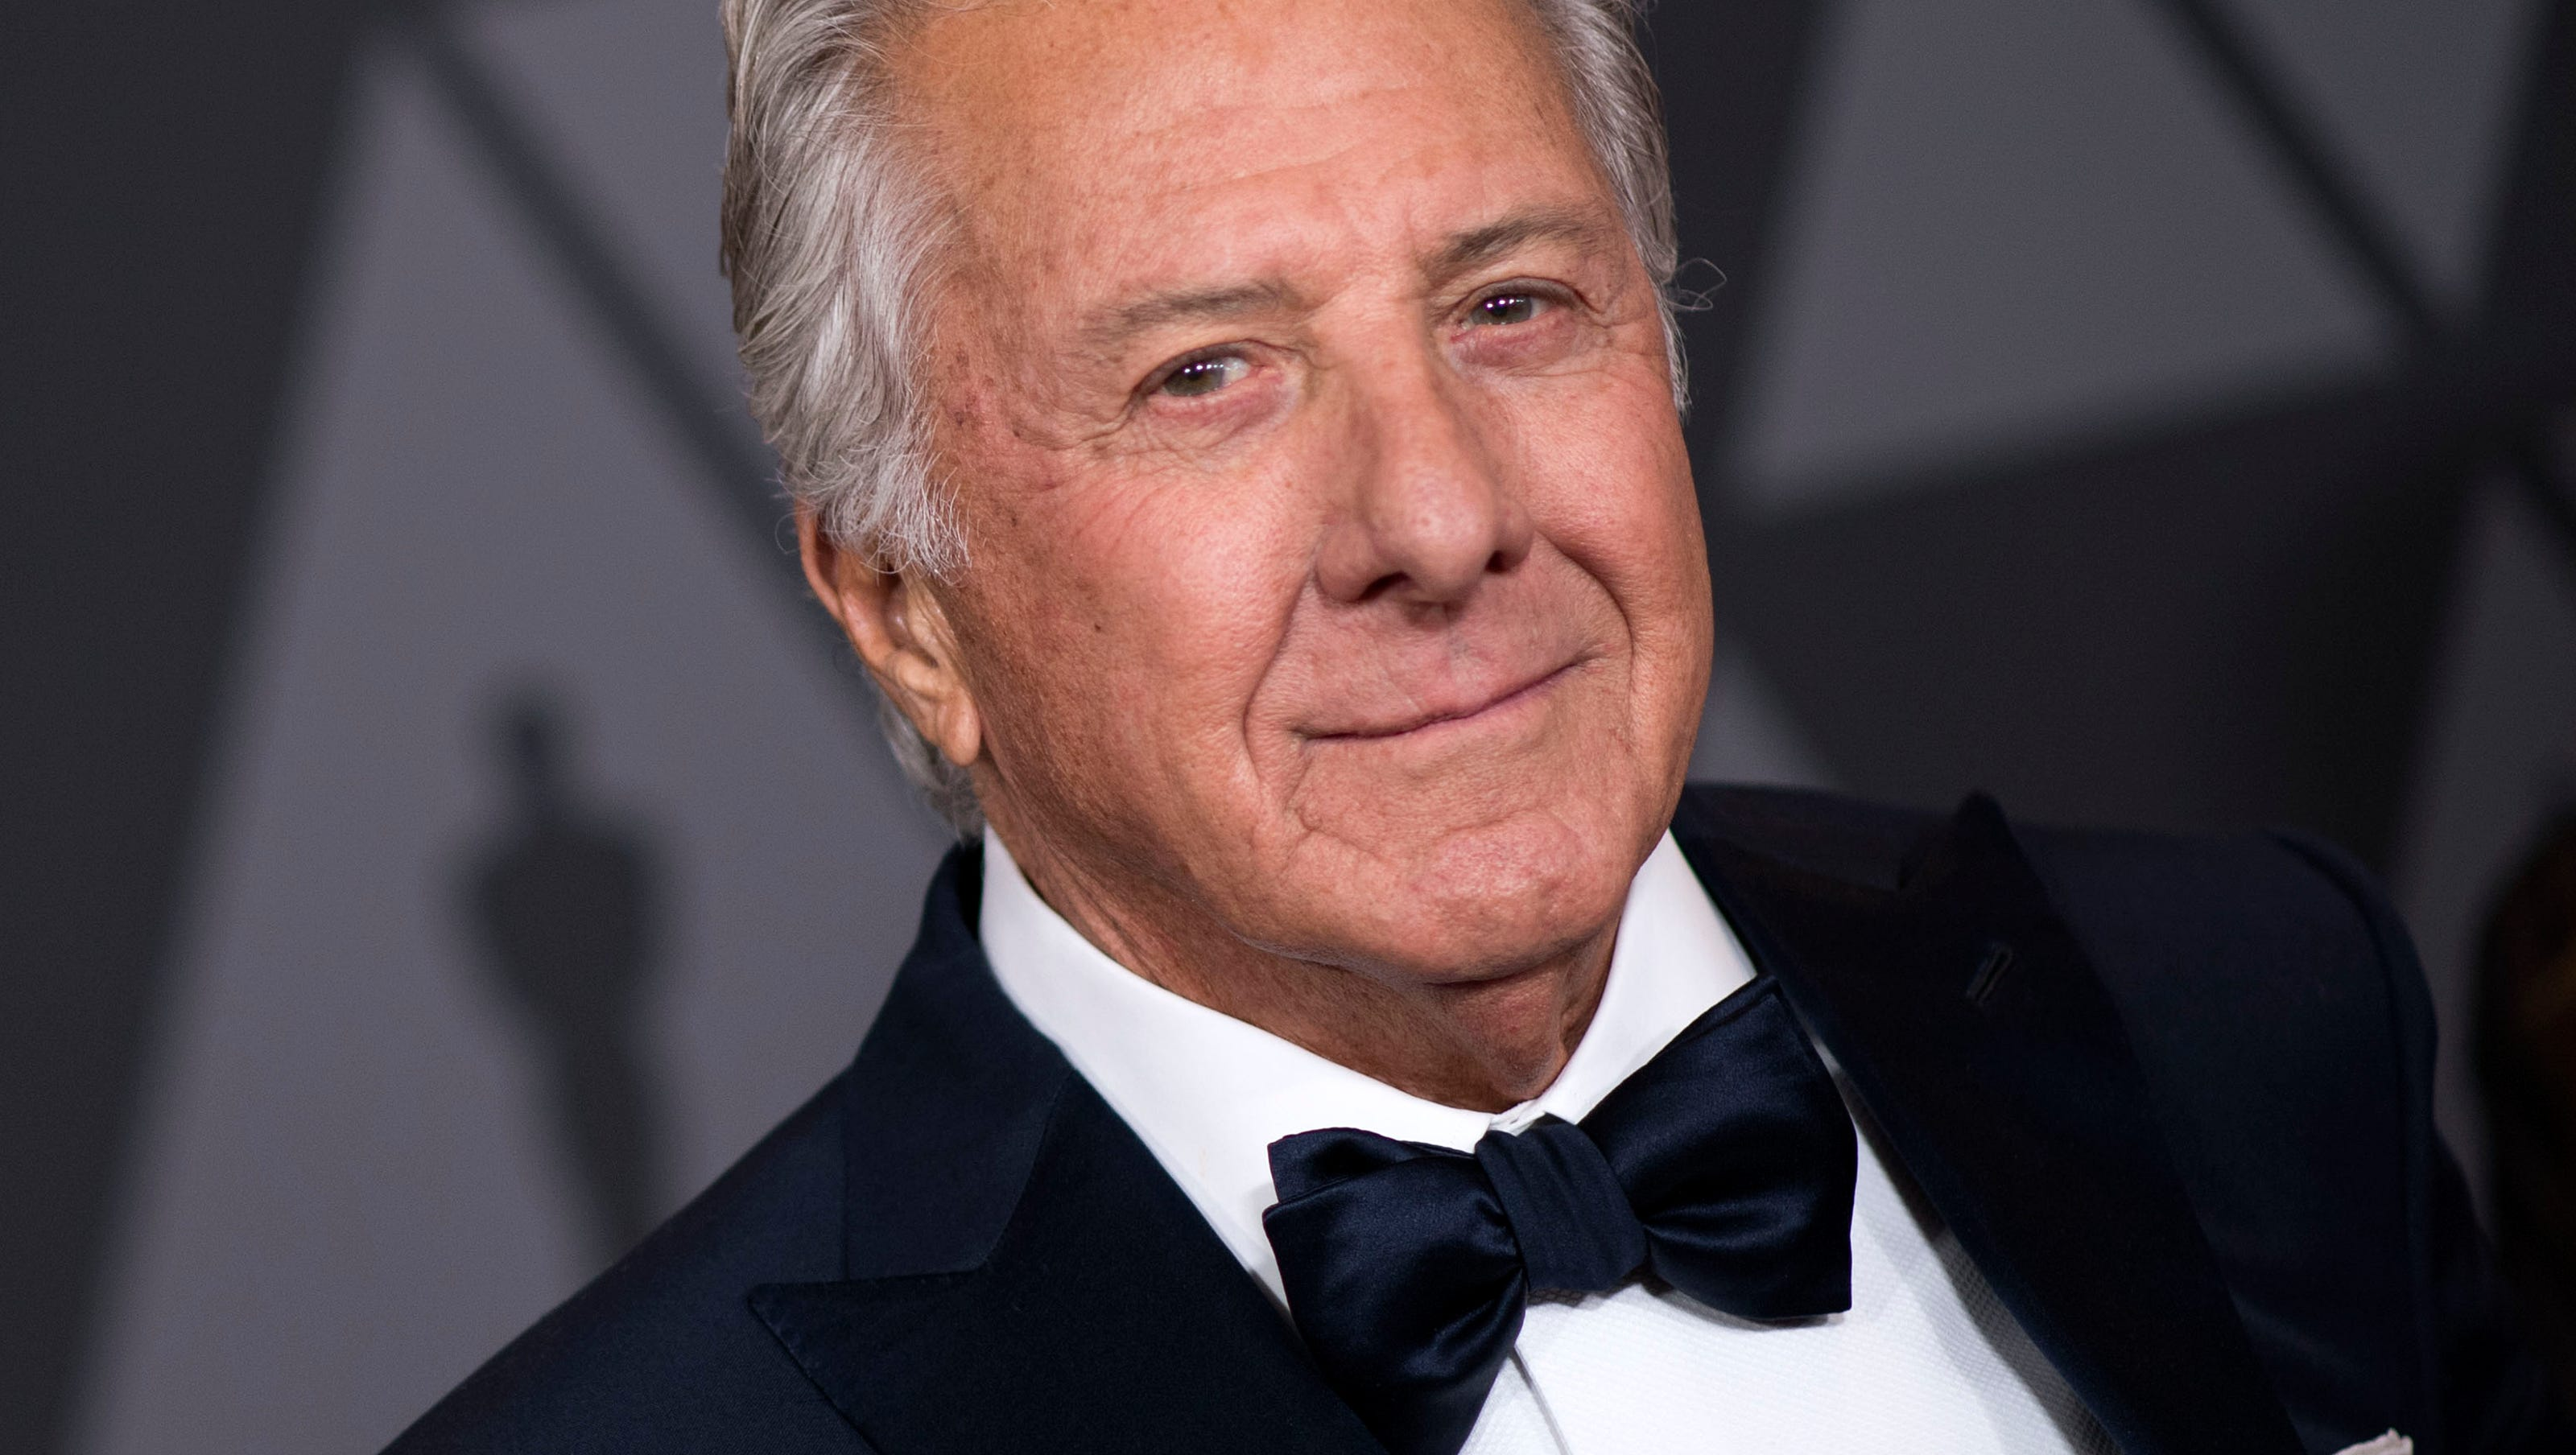 Kathryn Rossetter Pictures >> Dustin Hoffman accused of sexually groping actress 'night after night'